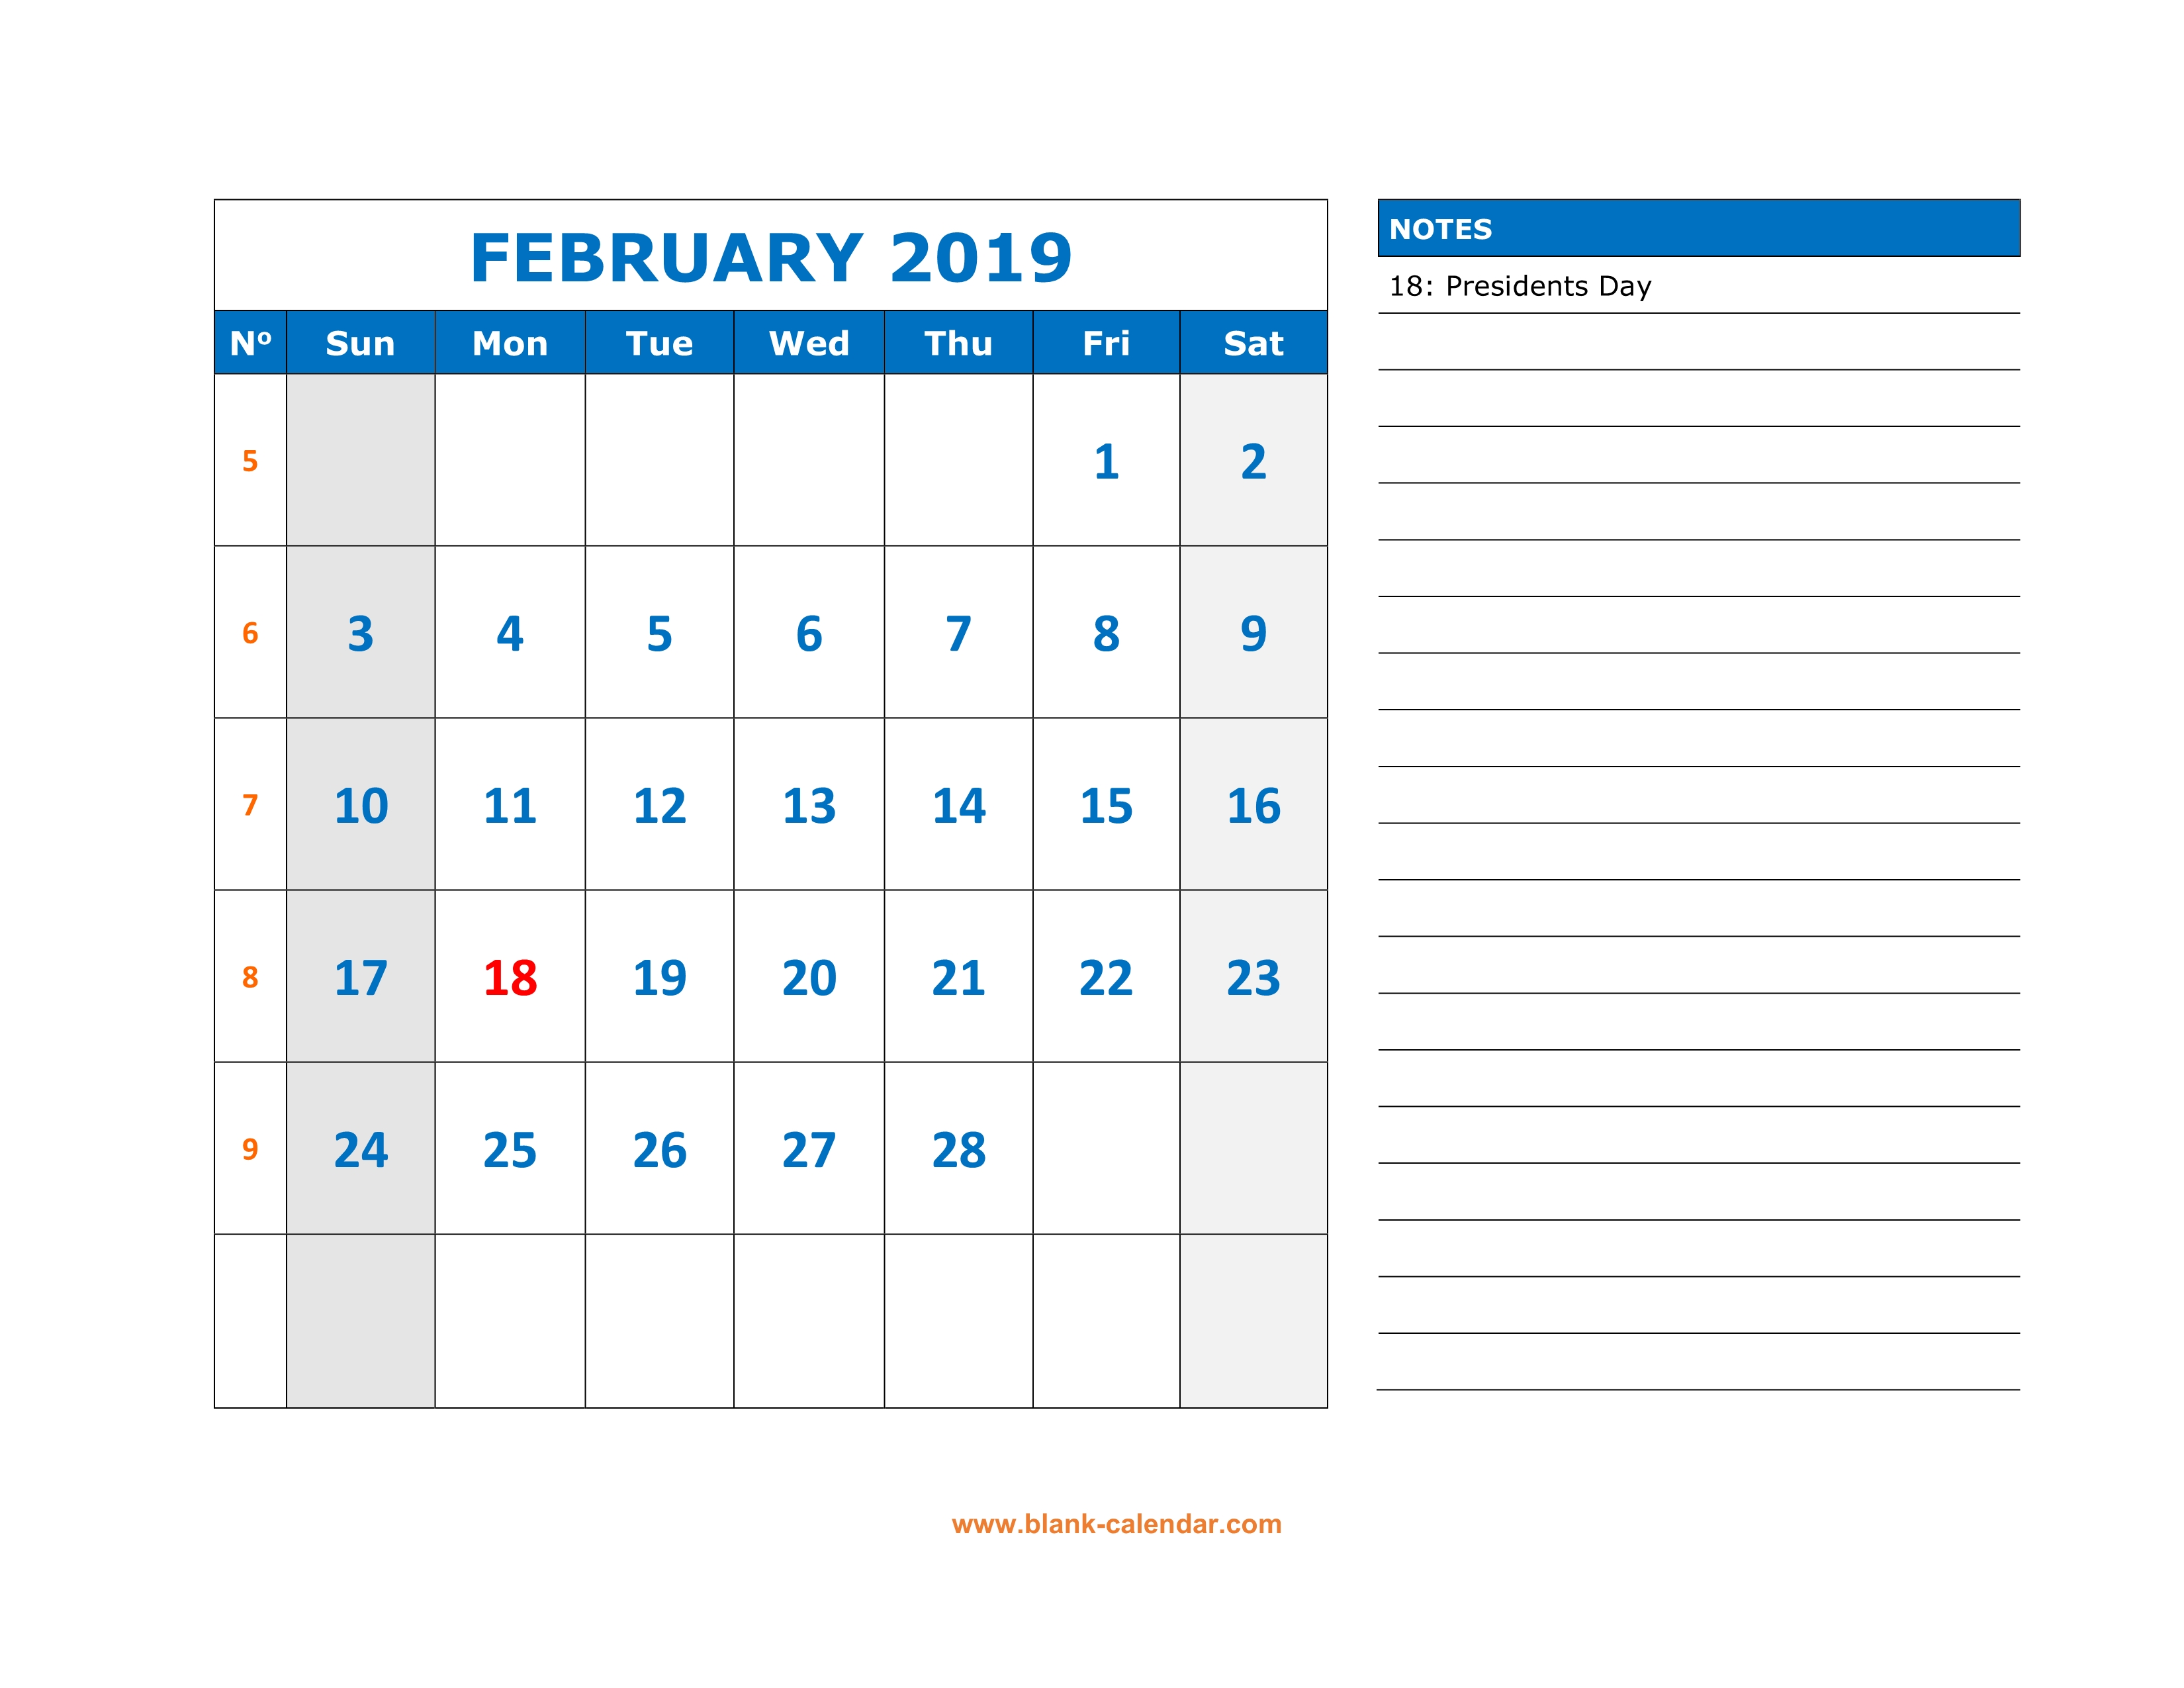 February Calendar 2019 With Notes Free Download Printable February 2019 Calendar, large space for